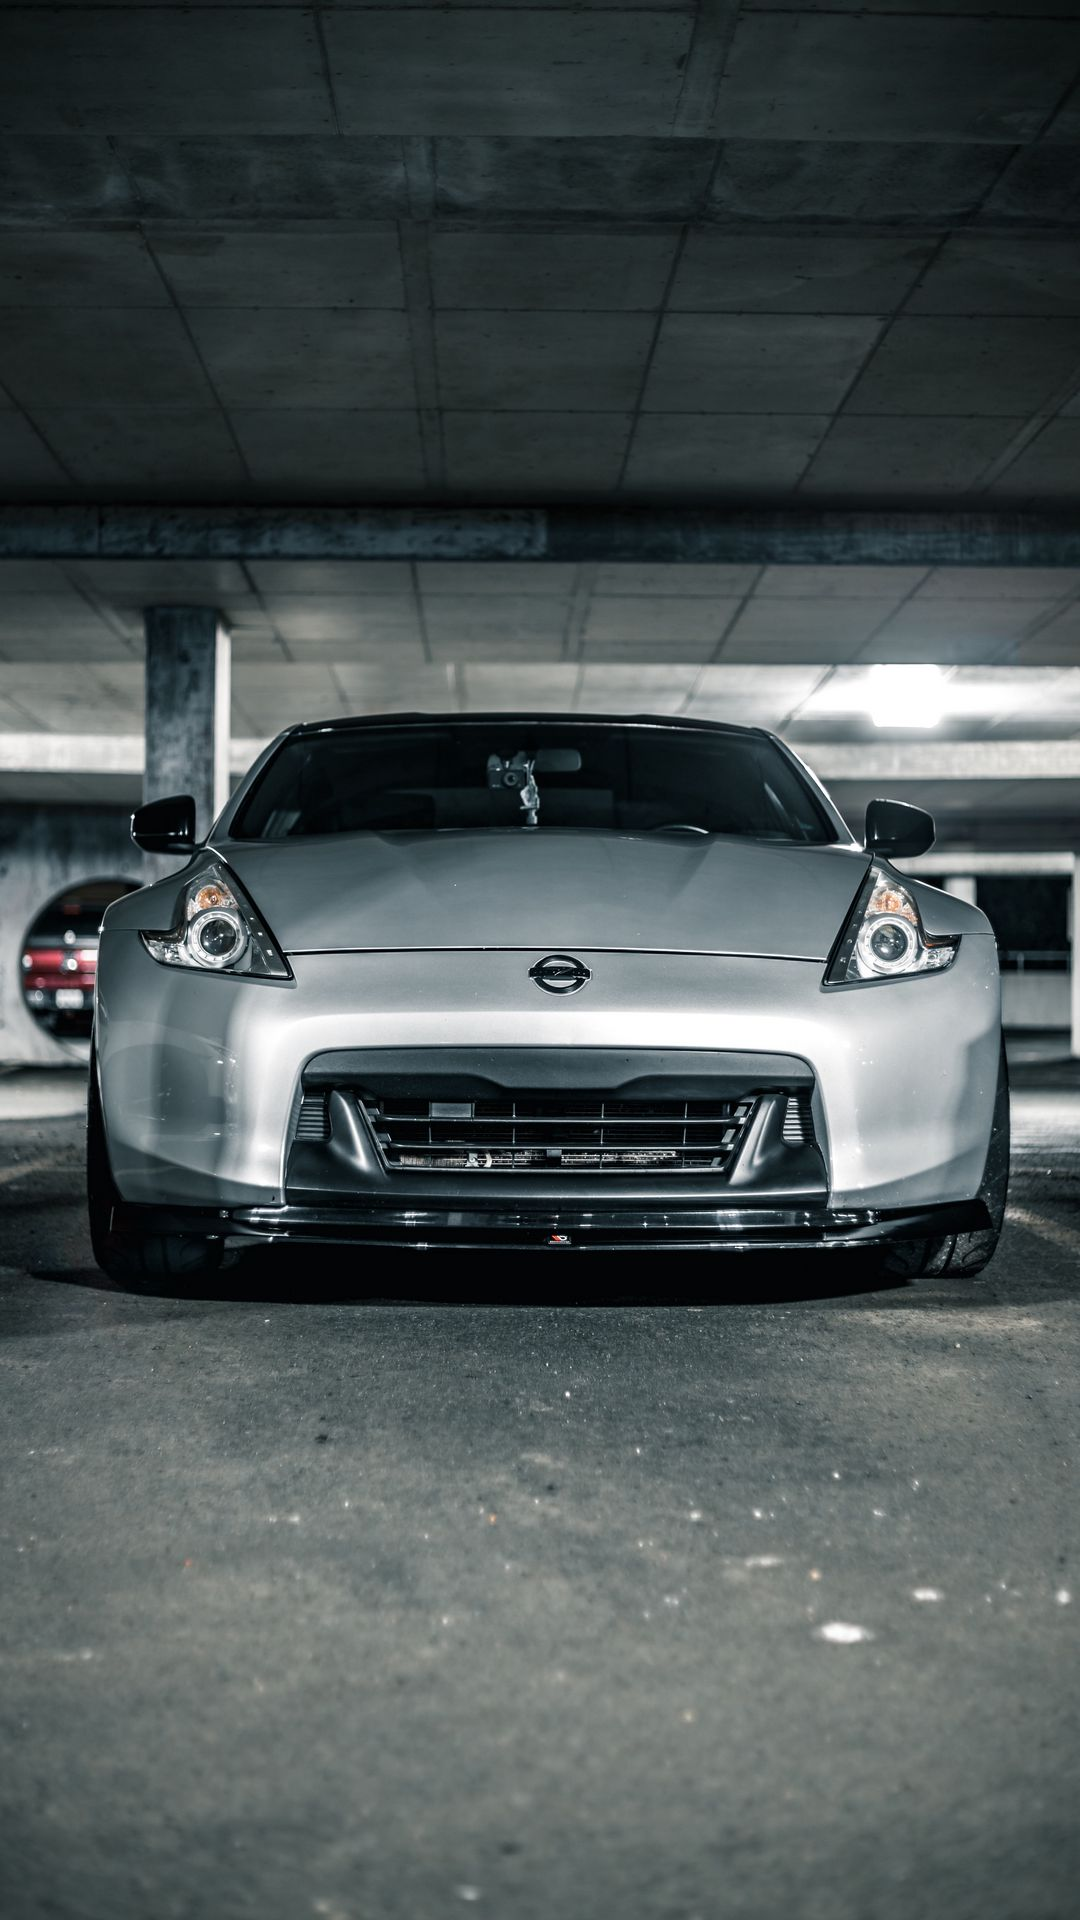 Nissan 350Z Tunning Wallpapers Free Download for Phone & iOS